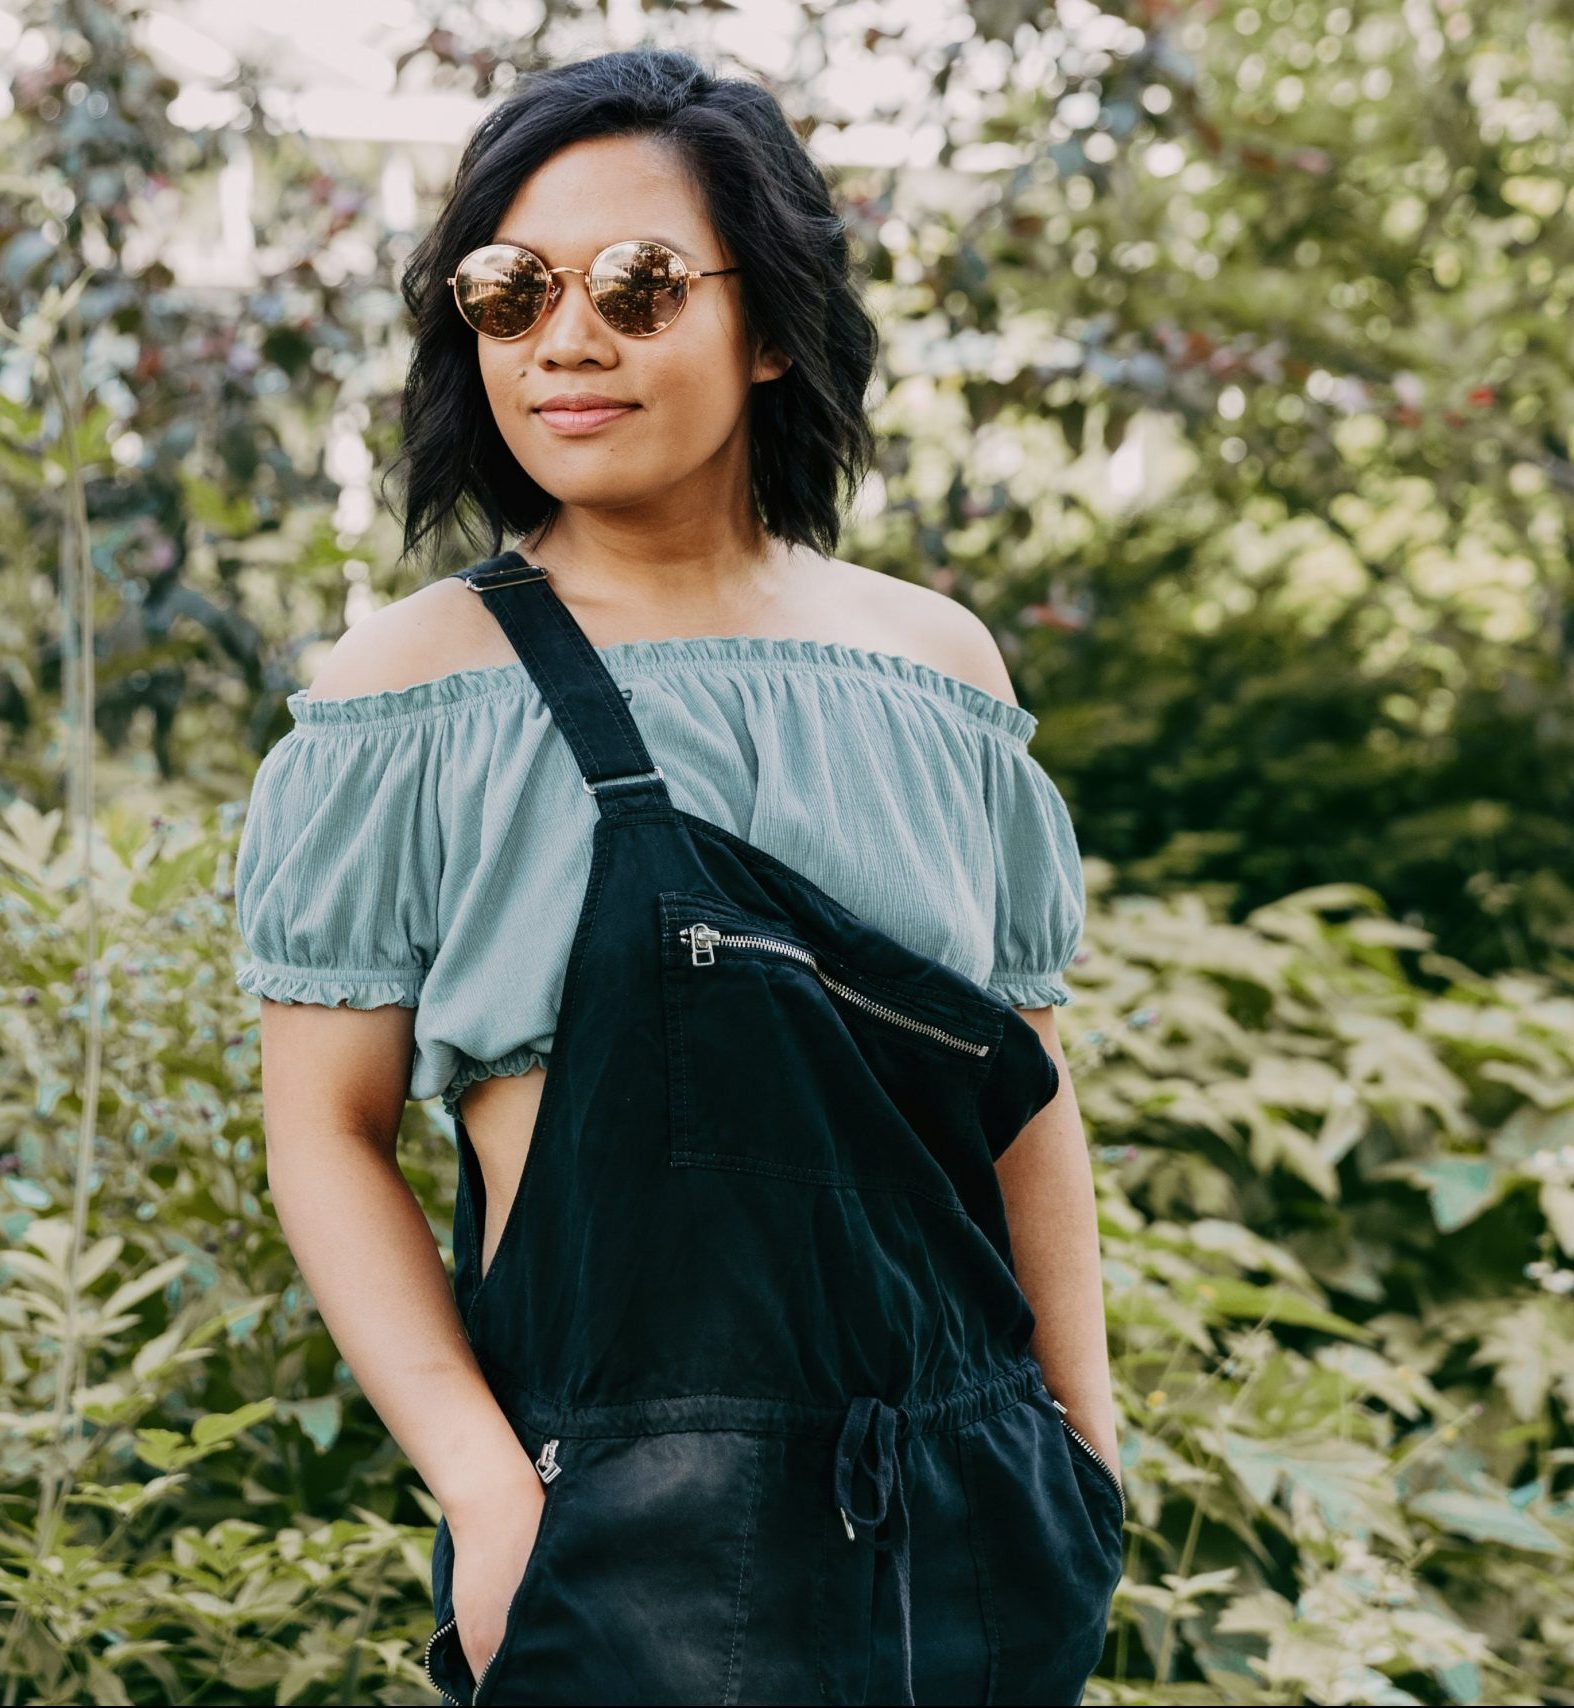 stylish confident woman wearing sunglasses and overalls in front of a field